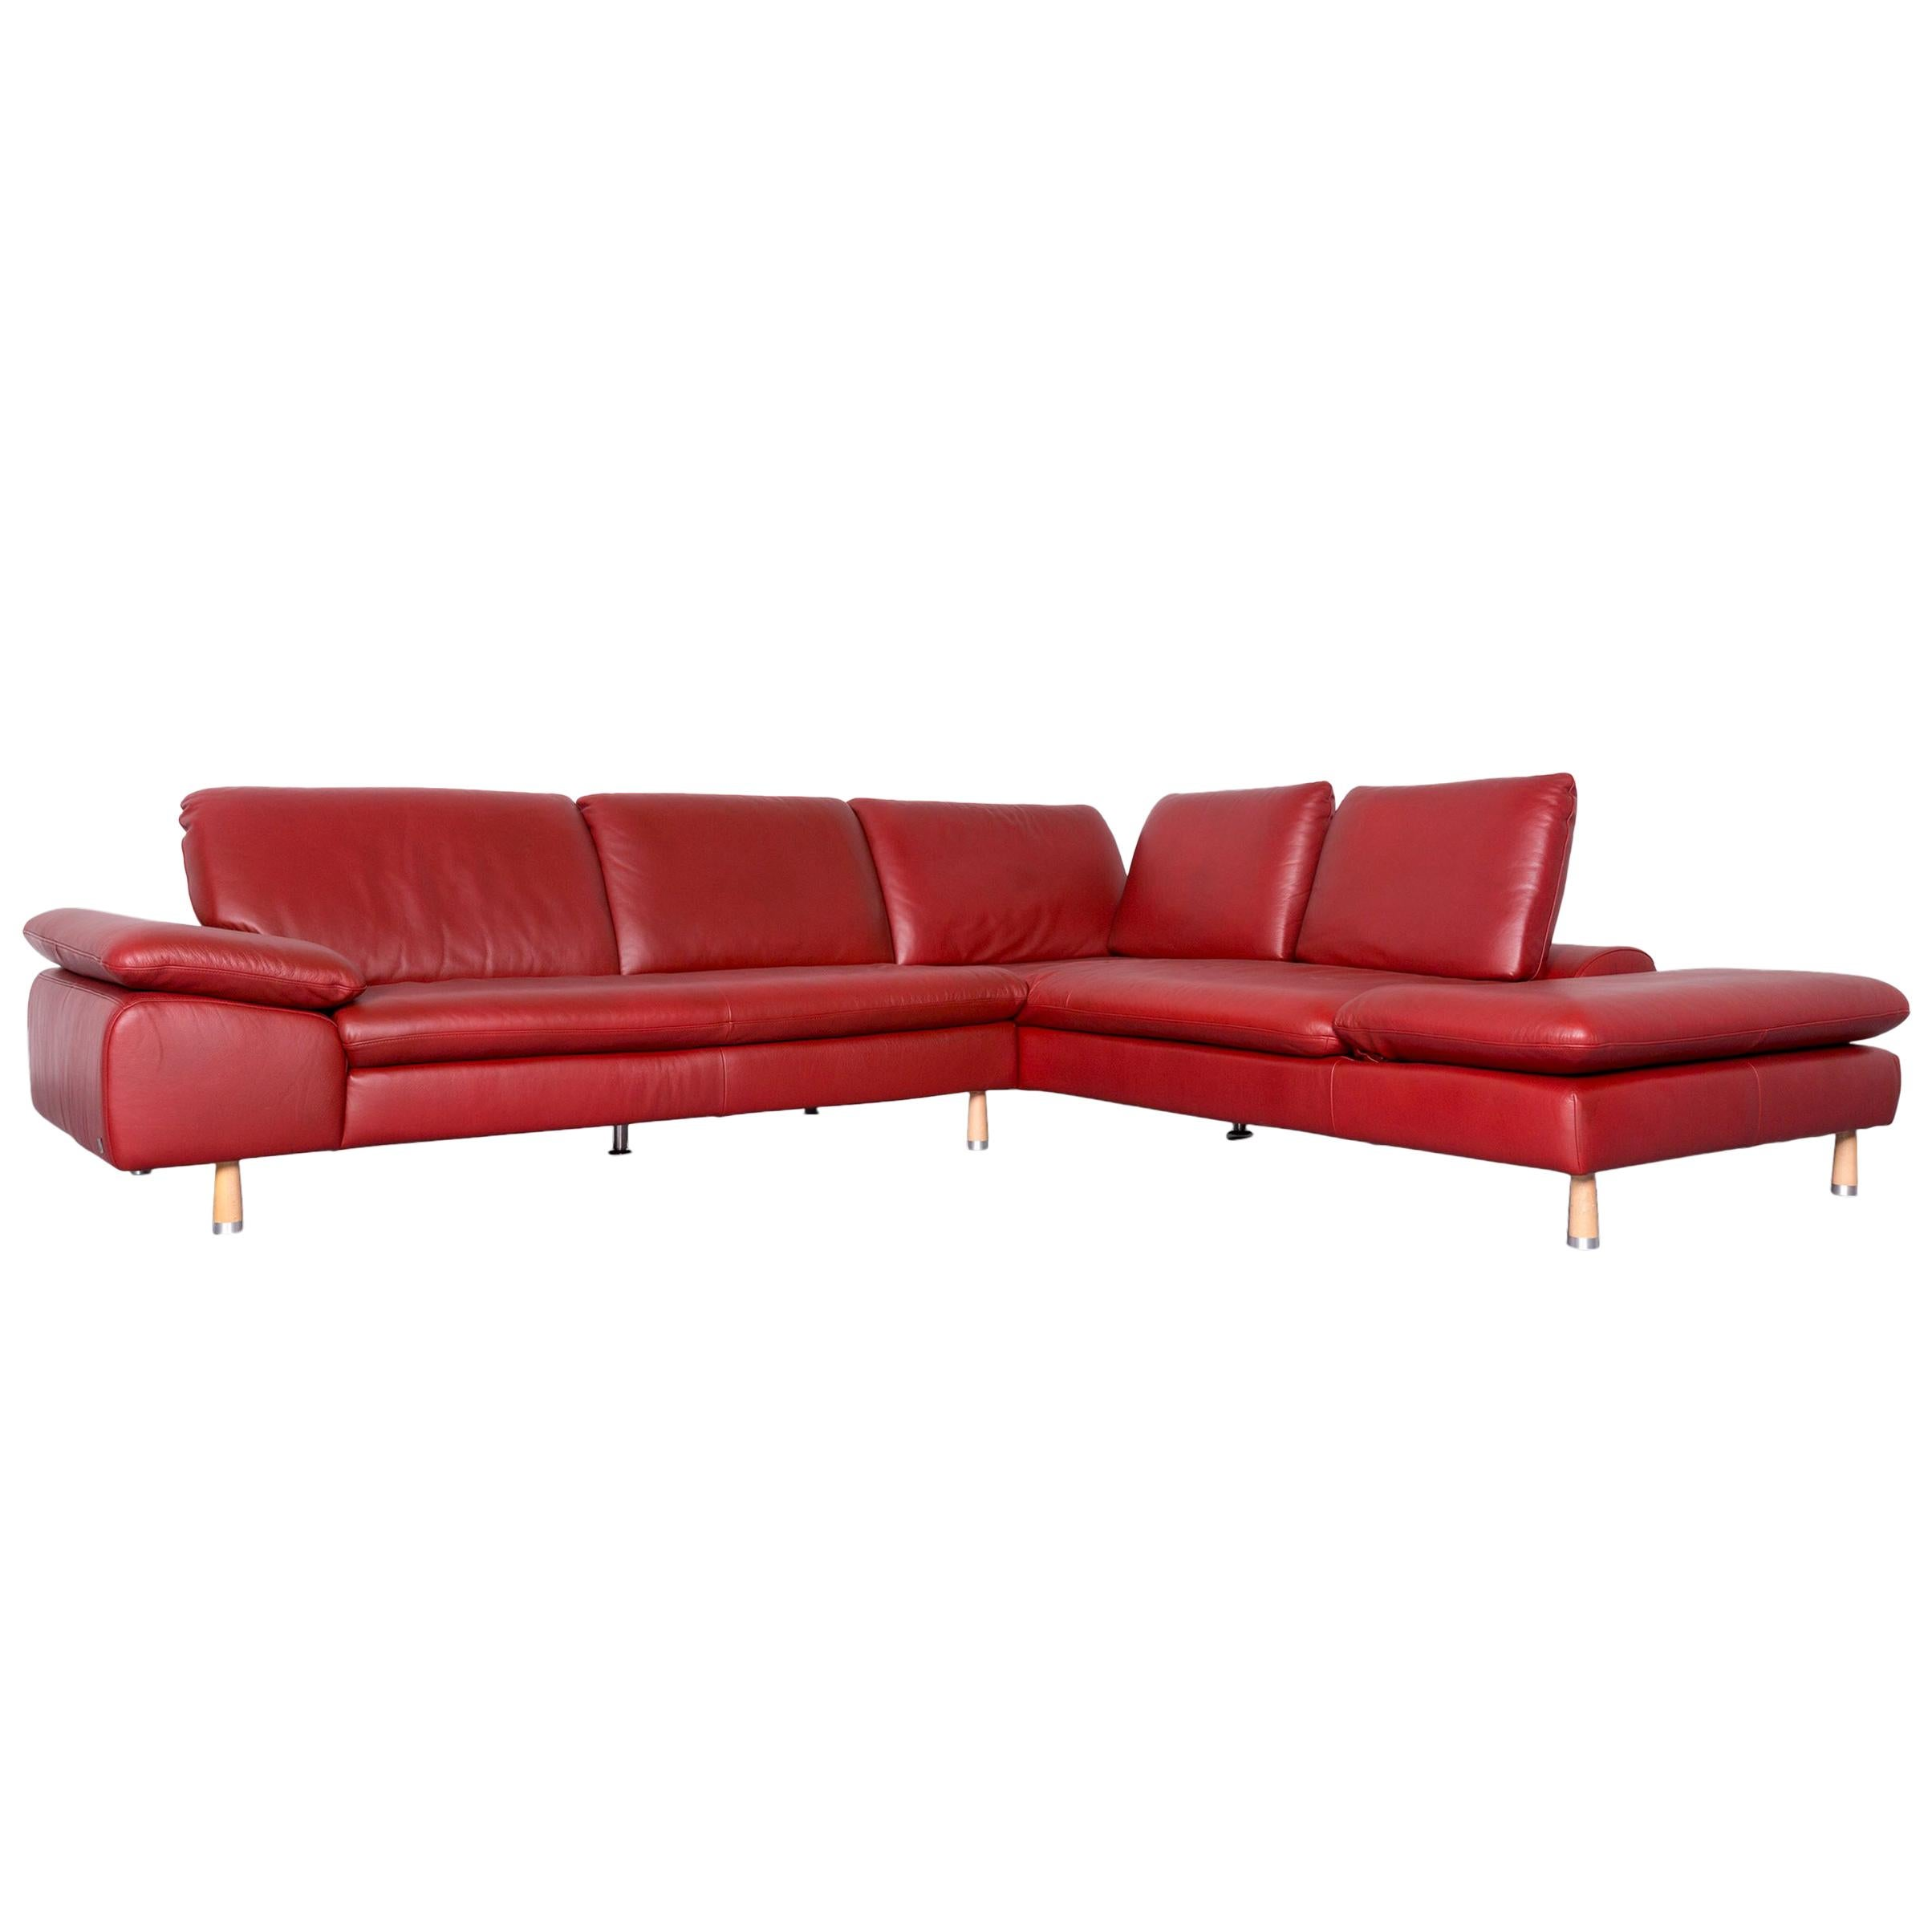 Willi Schillig Designer Leather Corner Sofa Red Corner Couch For Sale